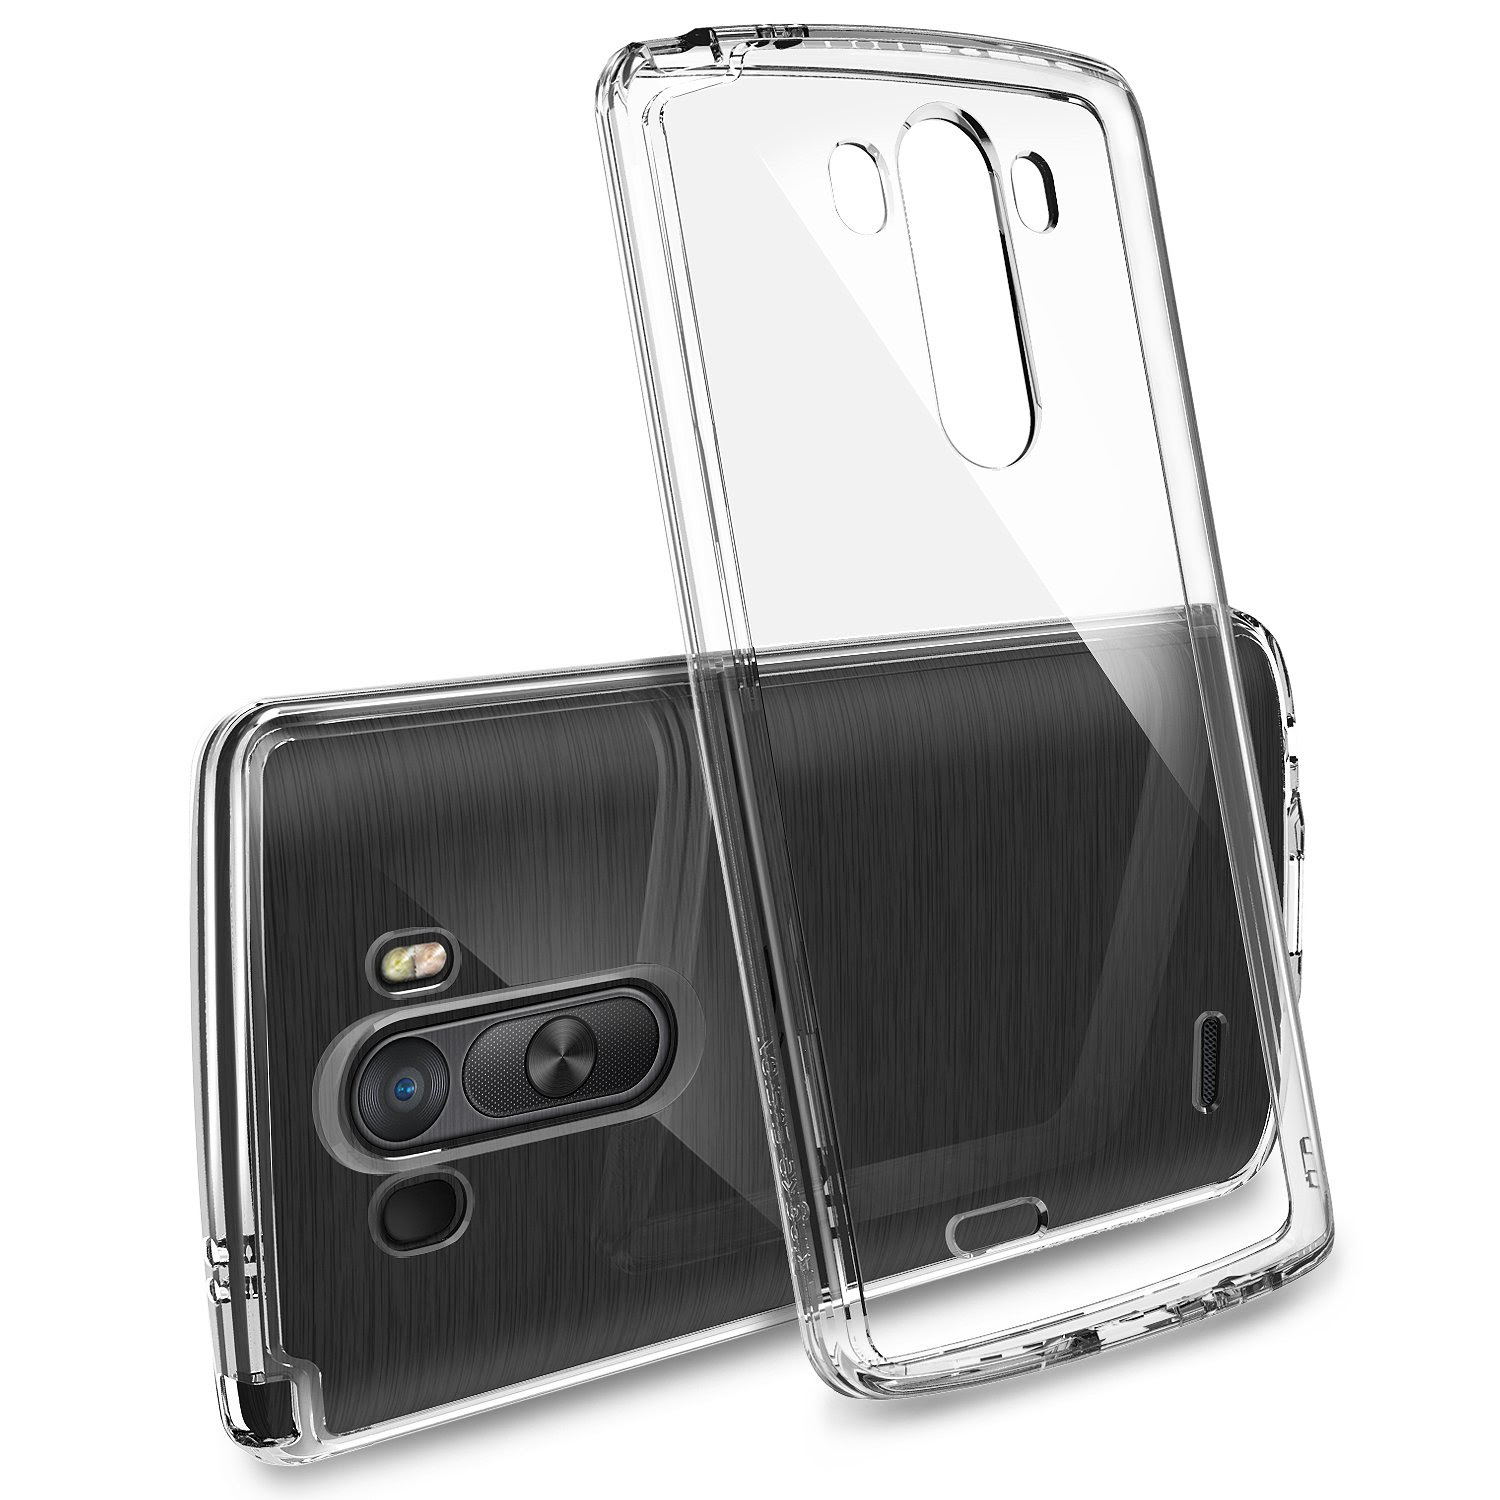 LG G3 Ringke Fusion Case Shock Absorption Bumper Premium Hybrid Hard Case for LG G3